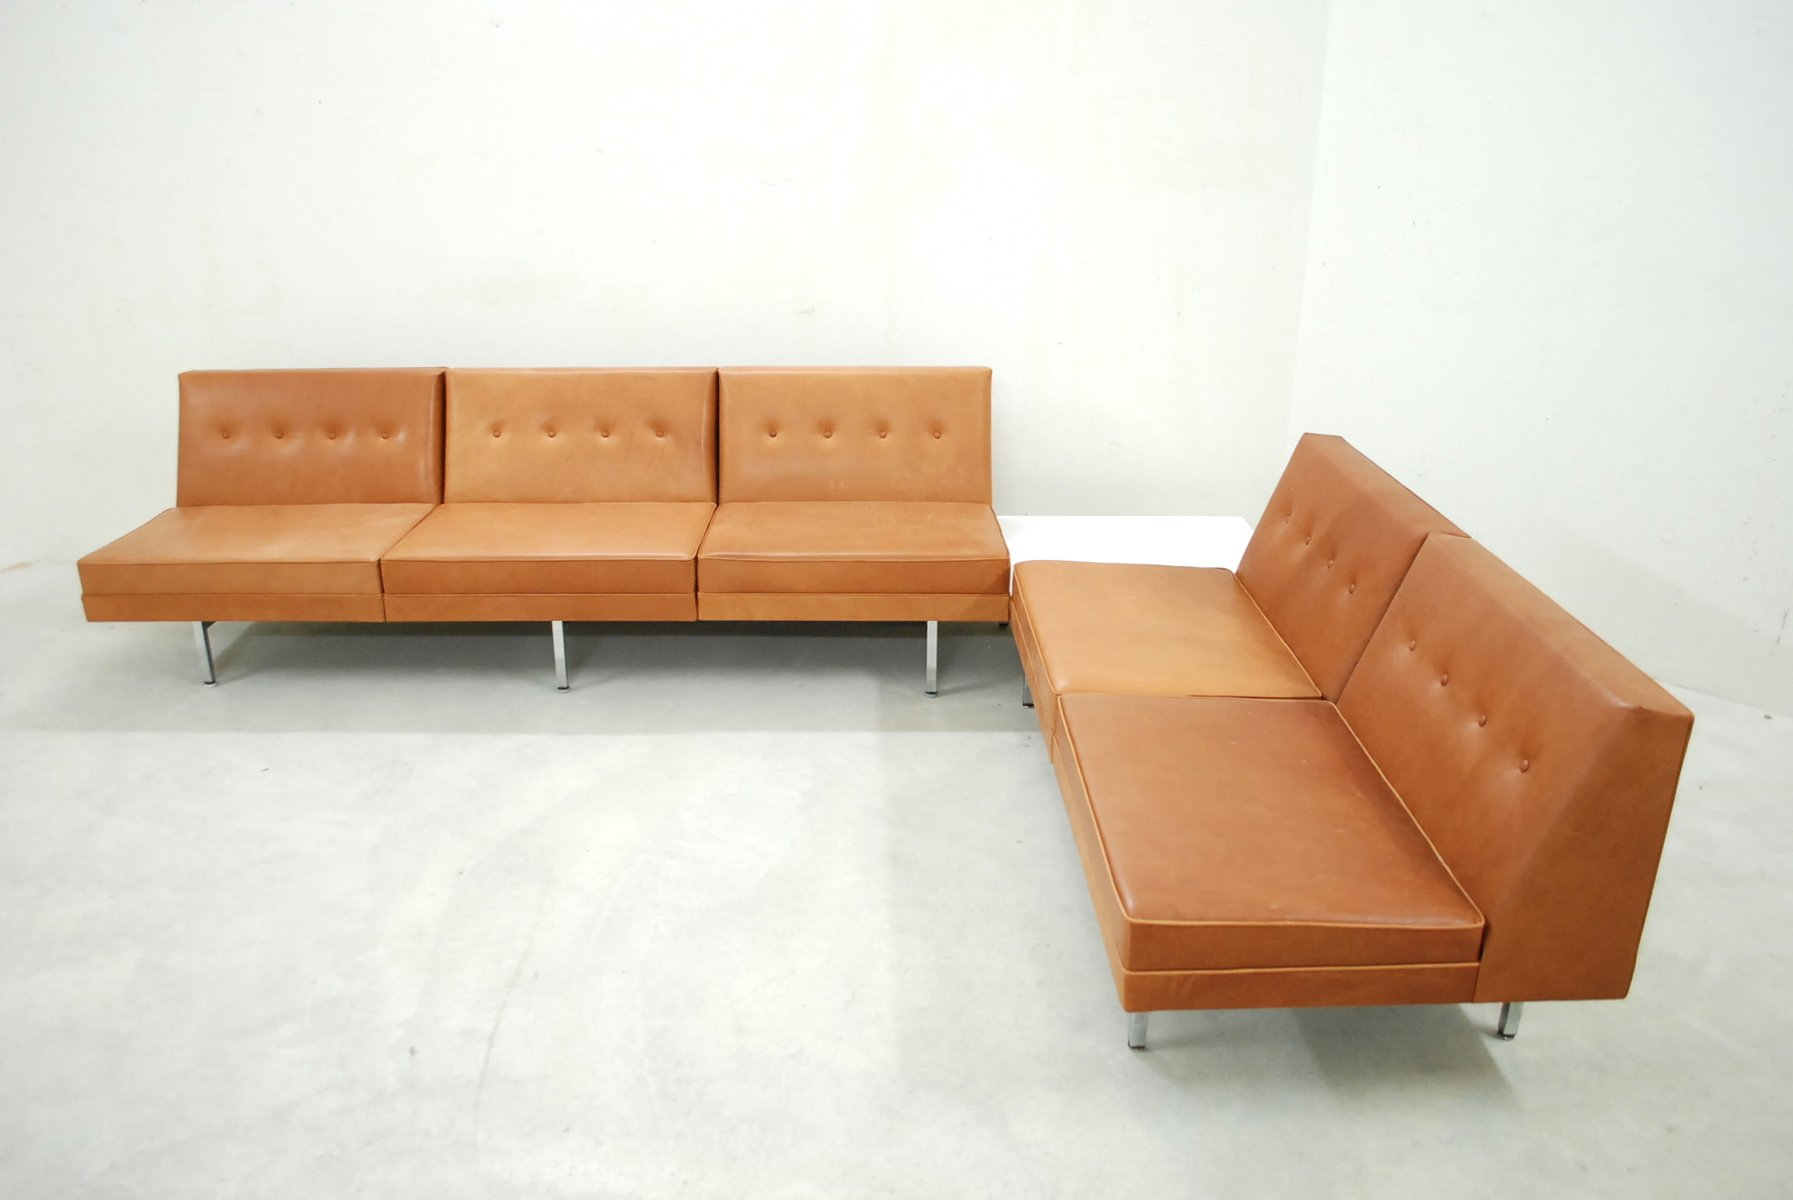 Cognac Leather Modular Sofa Set By George Nelson For Herman Miller 1968 For Sale At Pamono